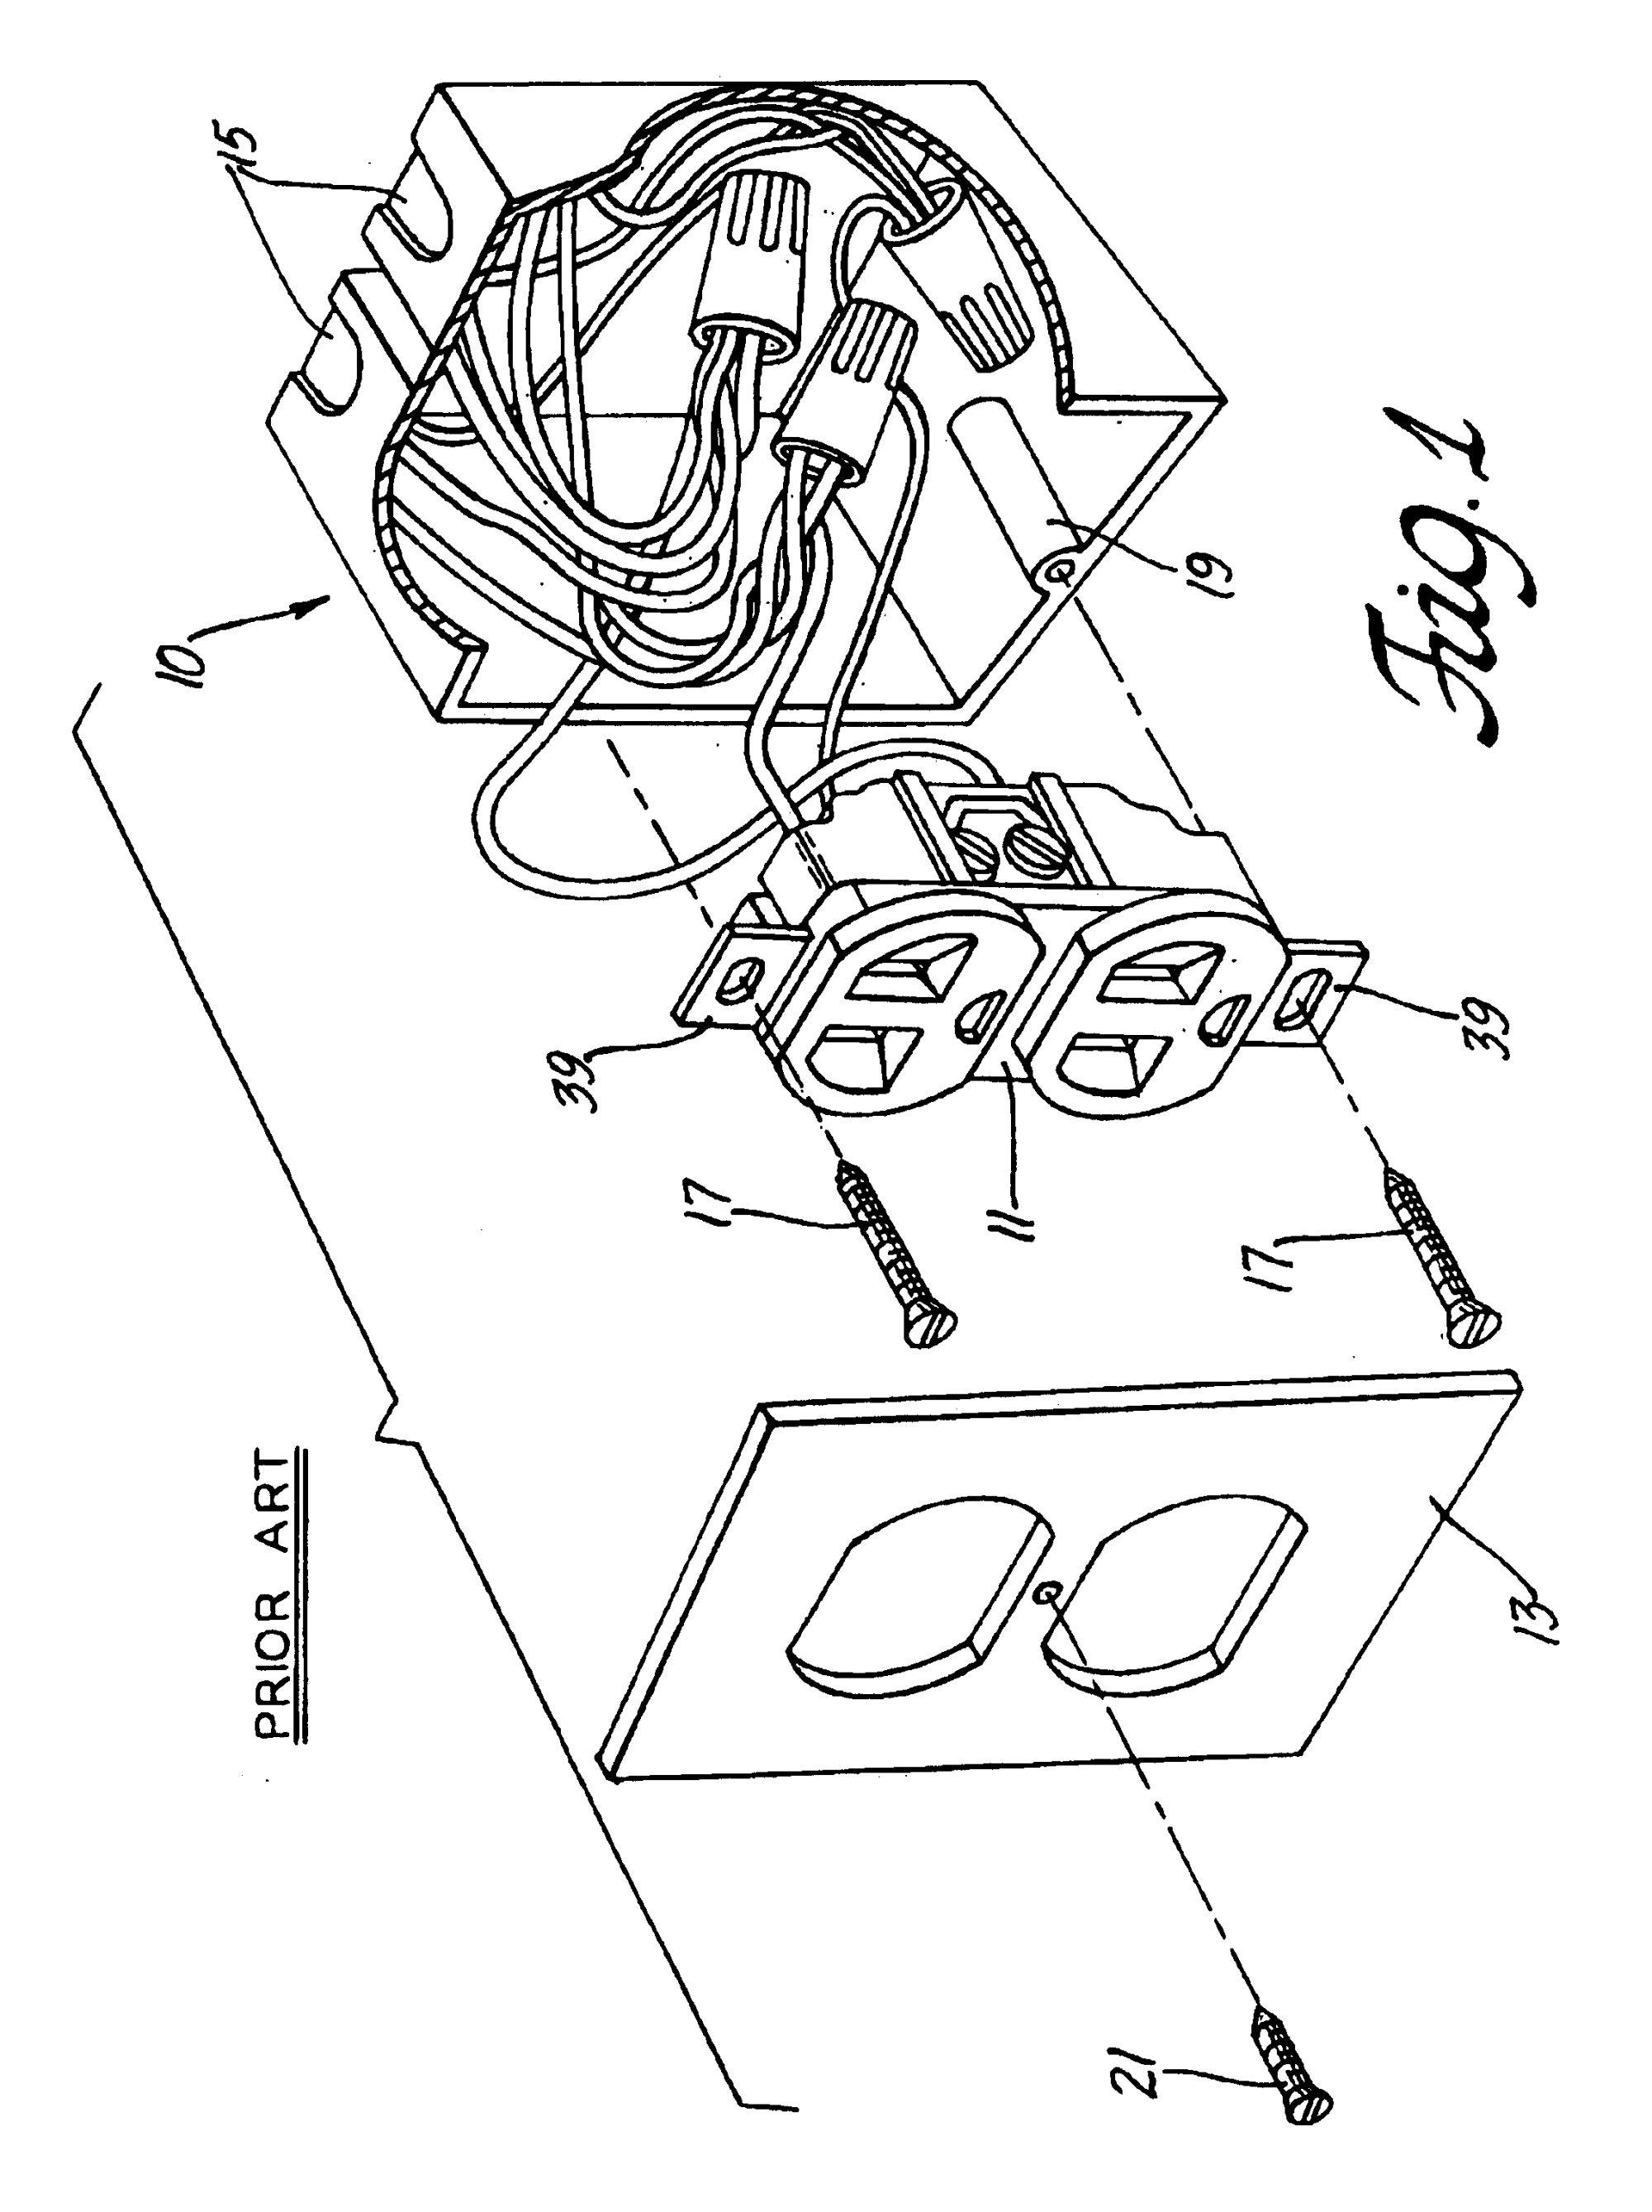 hight resolution of patent us6786766 electrical outlet box with secure quick connect wiring an outlet then light then switch furthermore patent us6786766